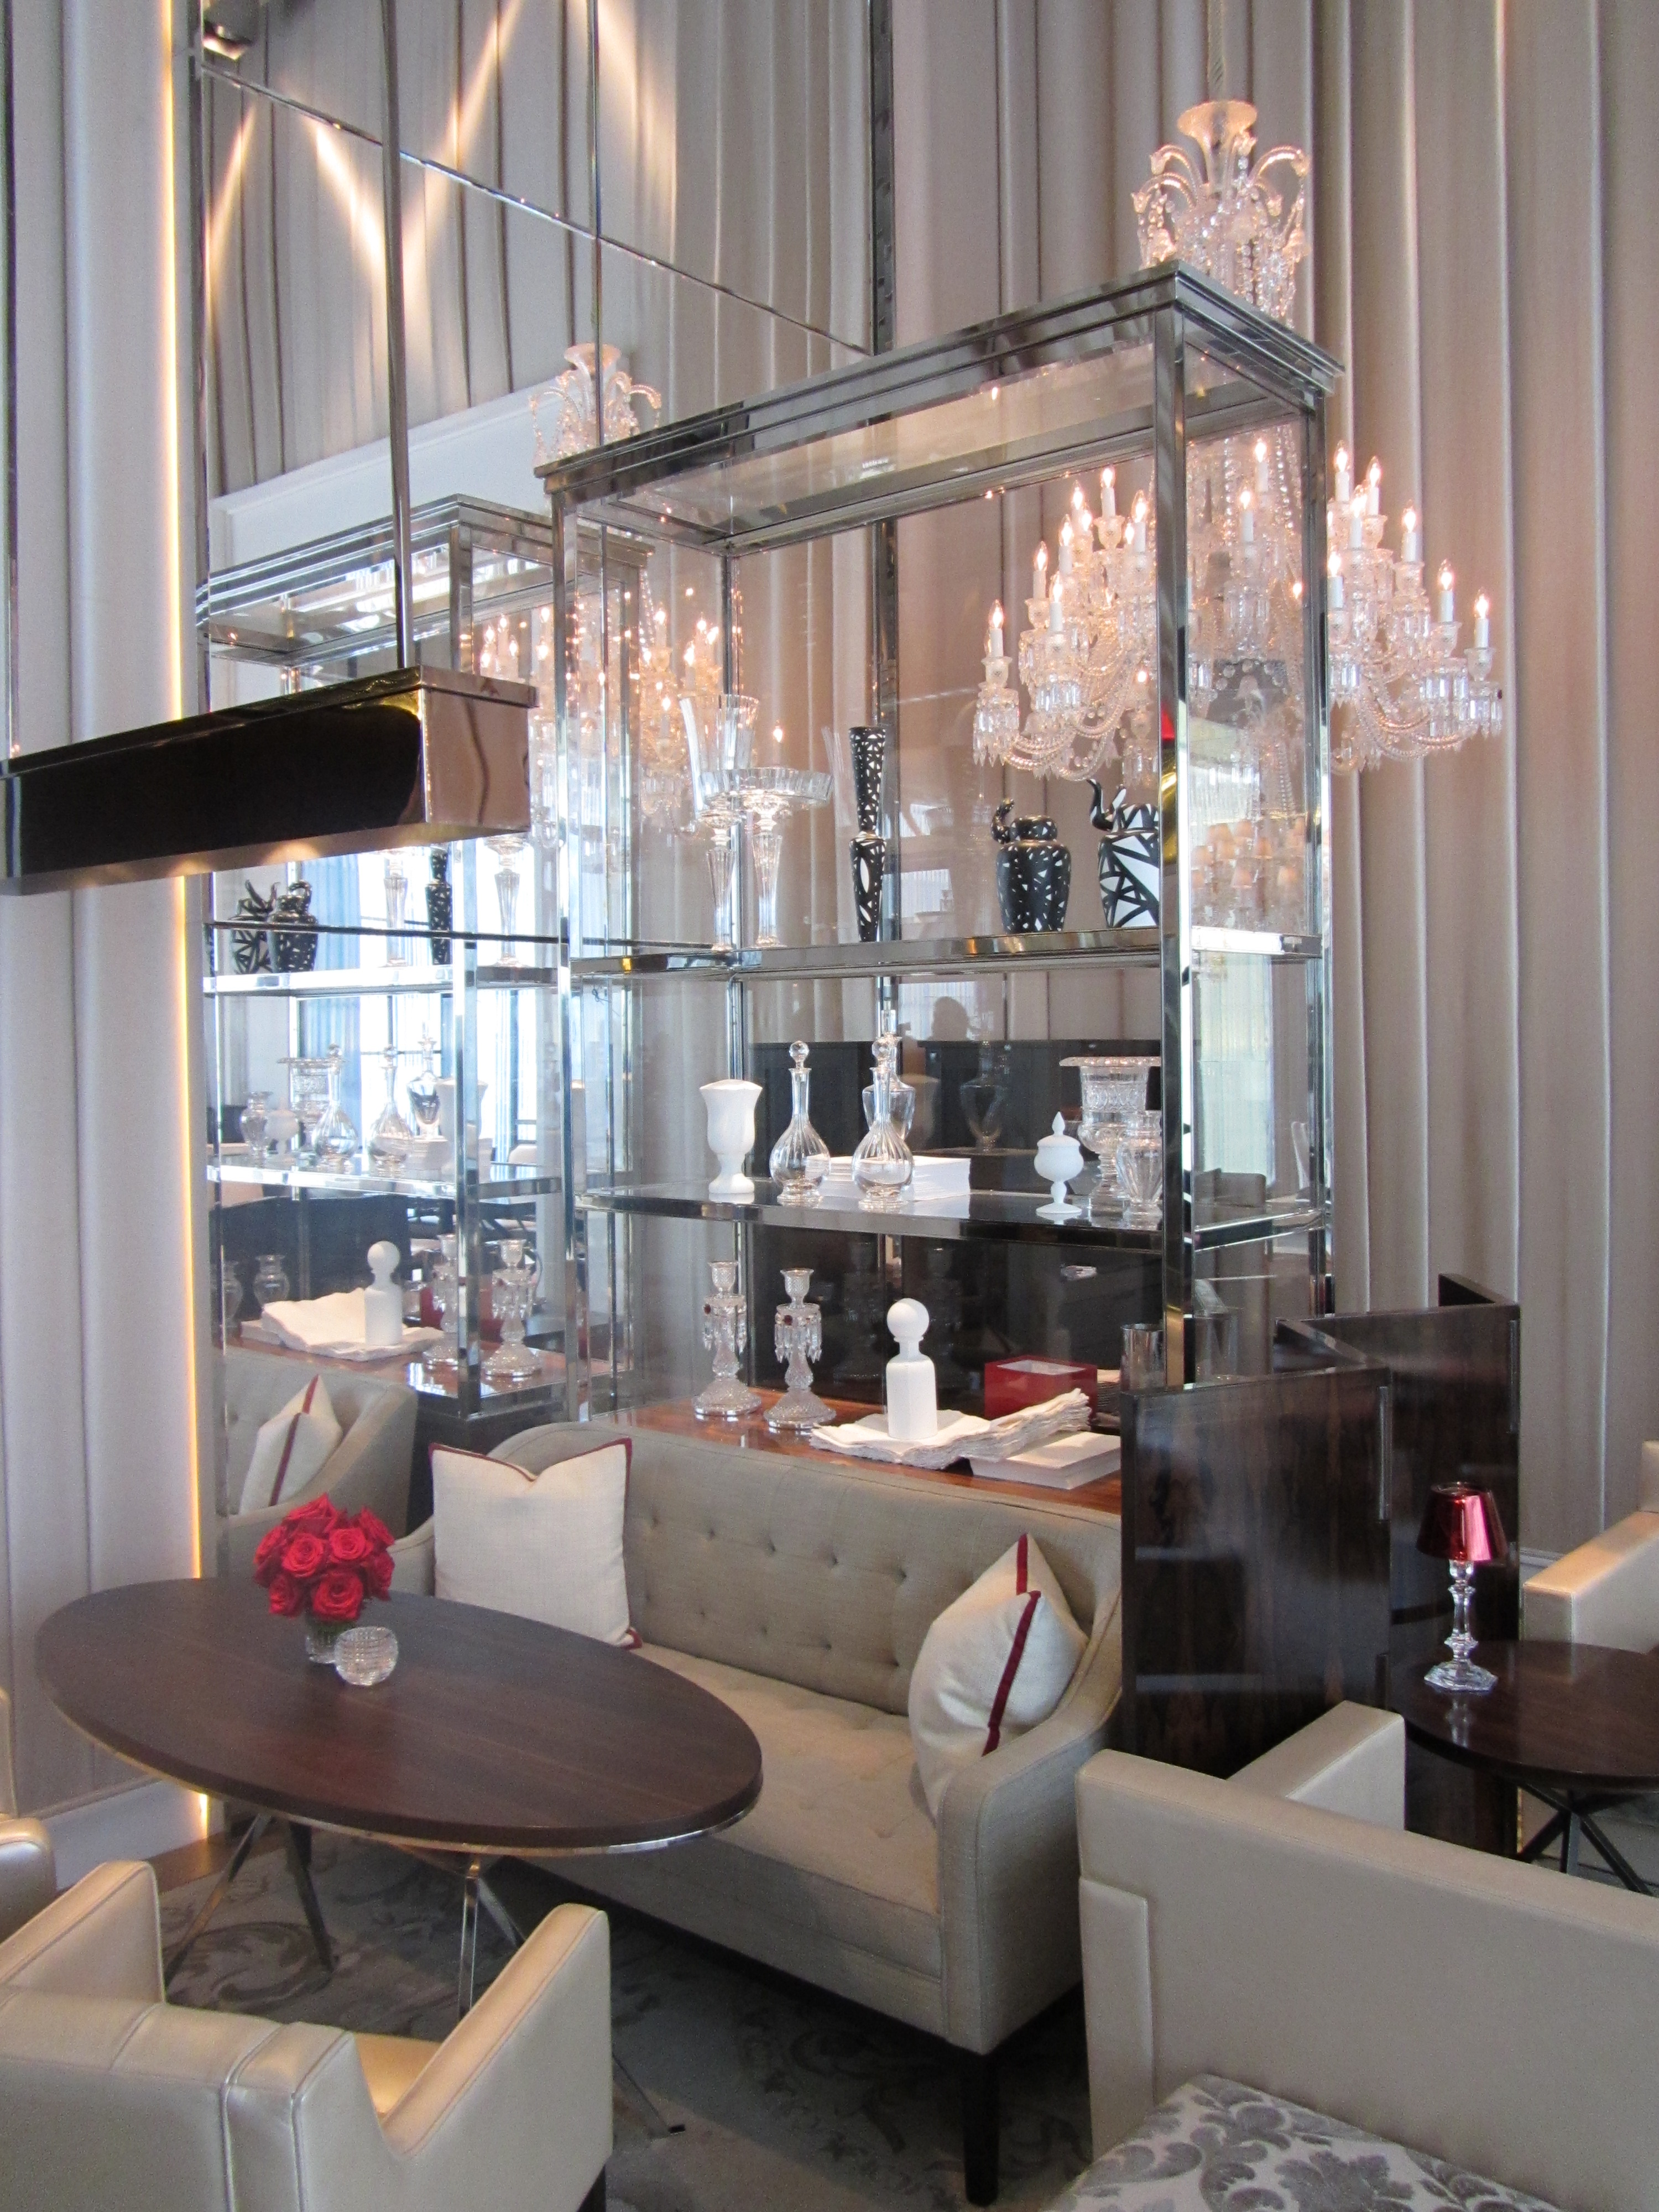 Most Comfortable Couch Baccarat Hotel – New York | Hotel Reviews